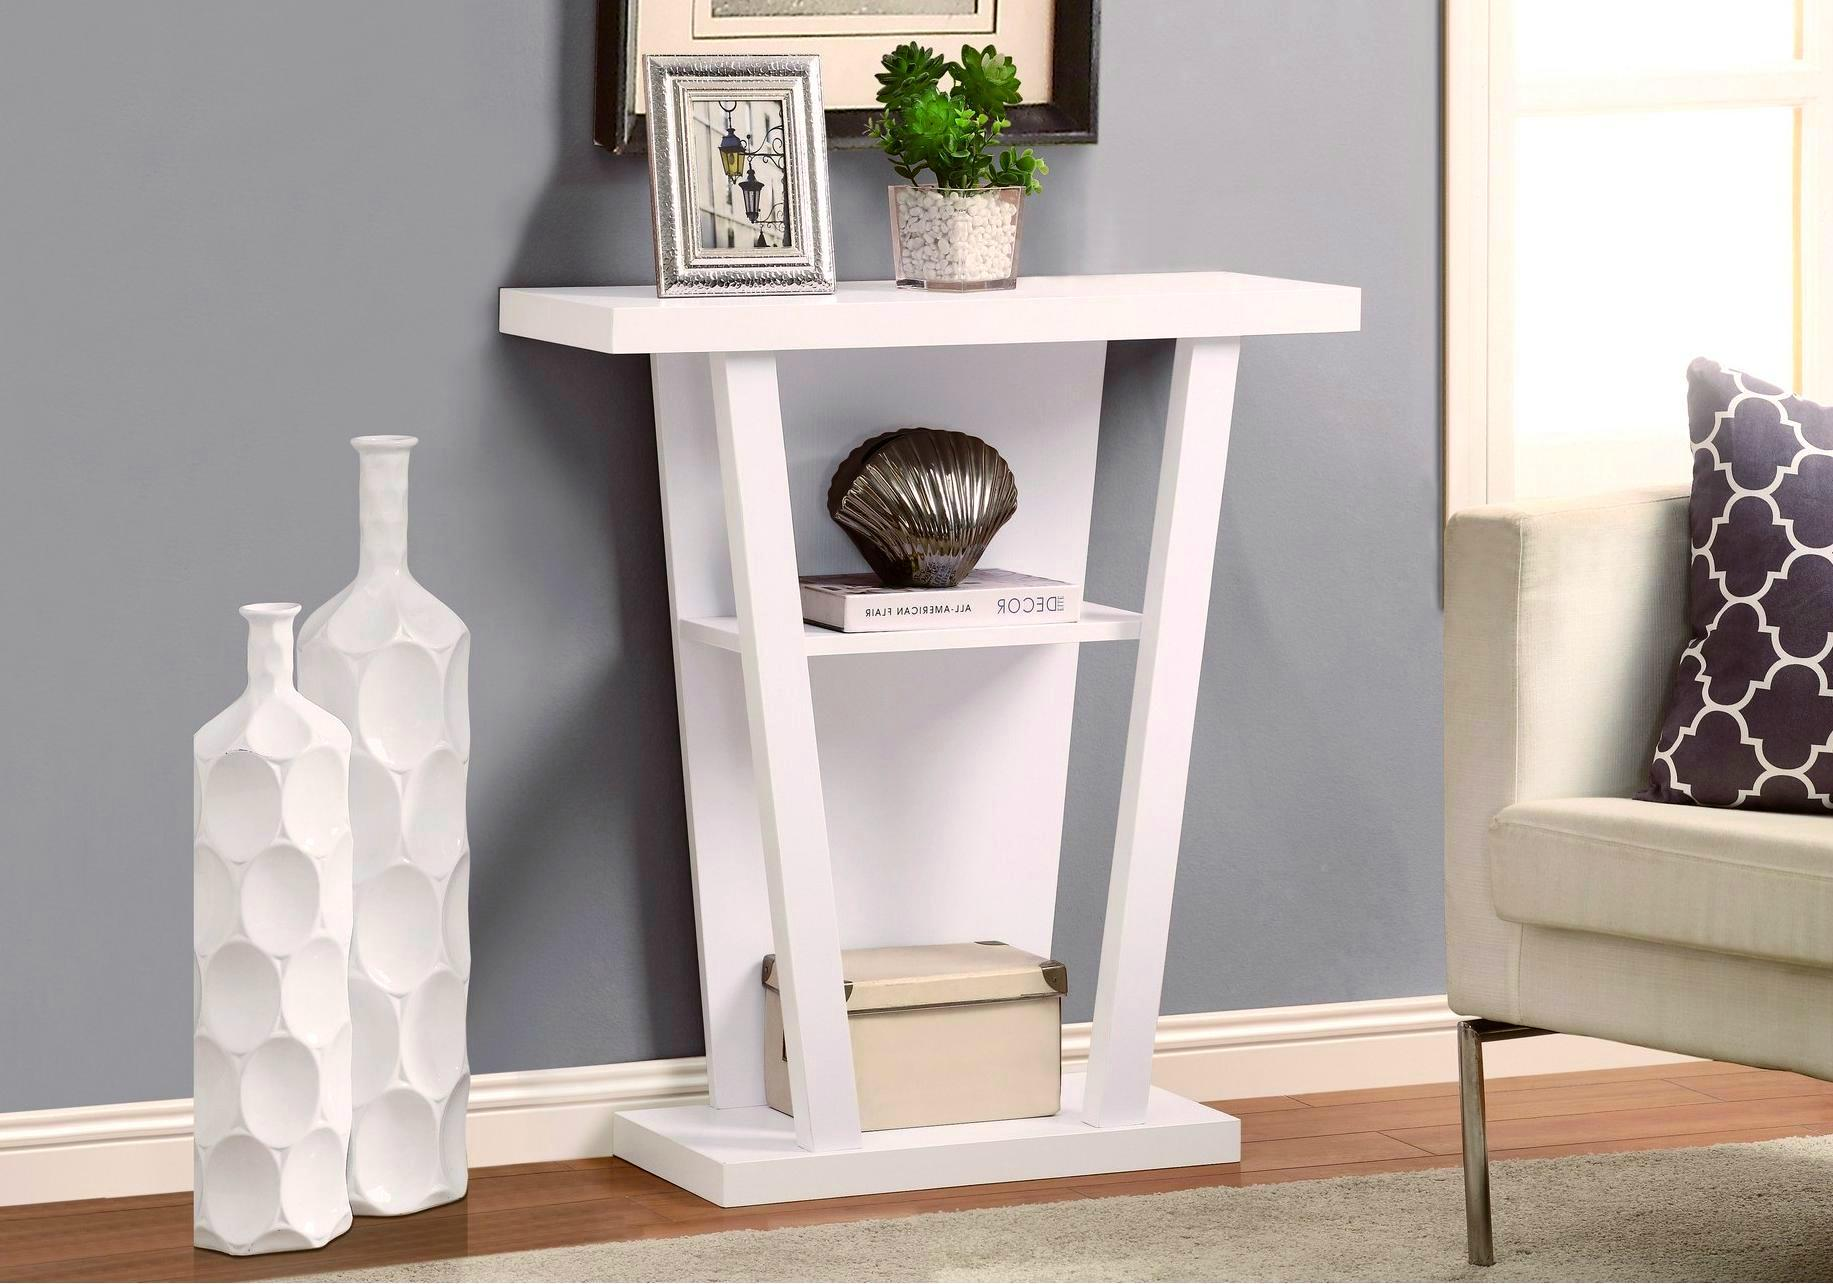 wooden tier hall console entrance accent table mighty behind couch front porch seating round patio with umbrella hole white metal farmhouse coffee small patterned living room